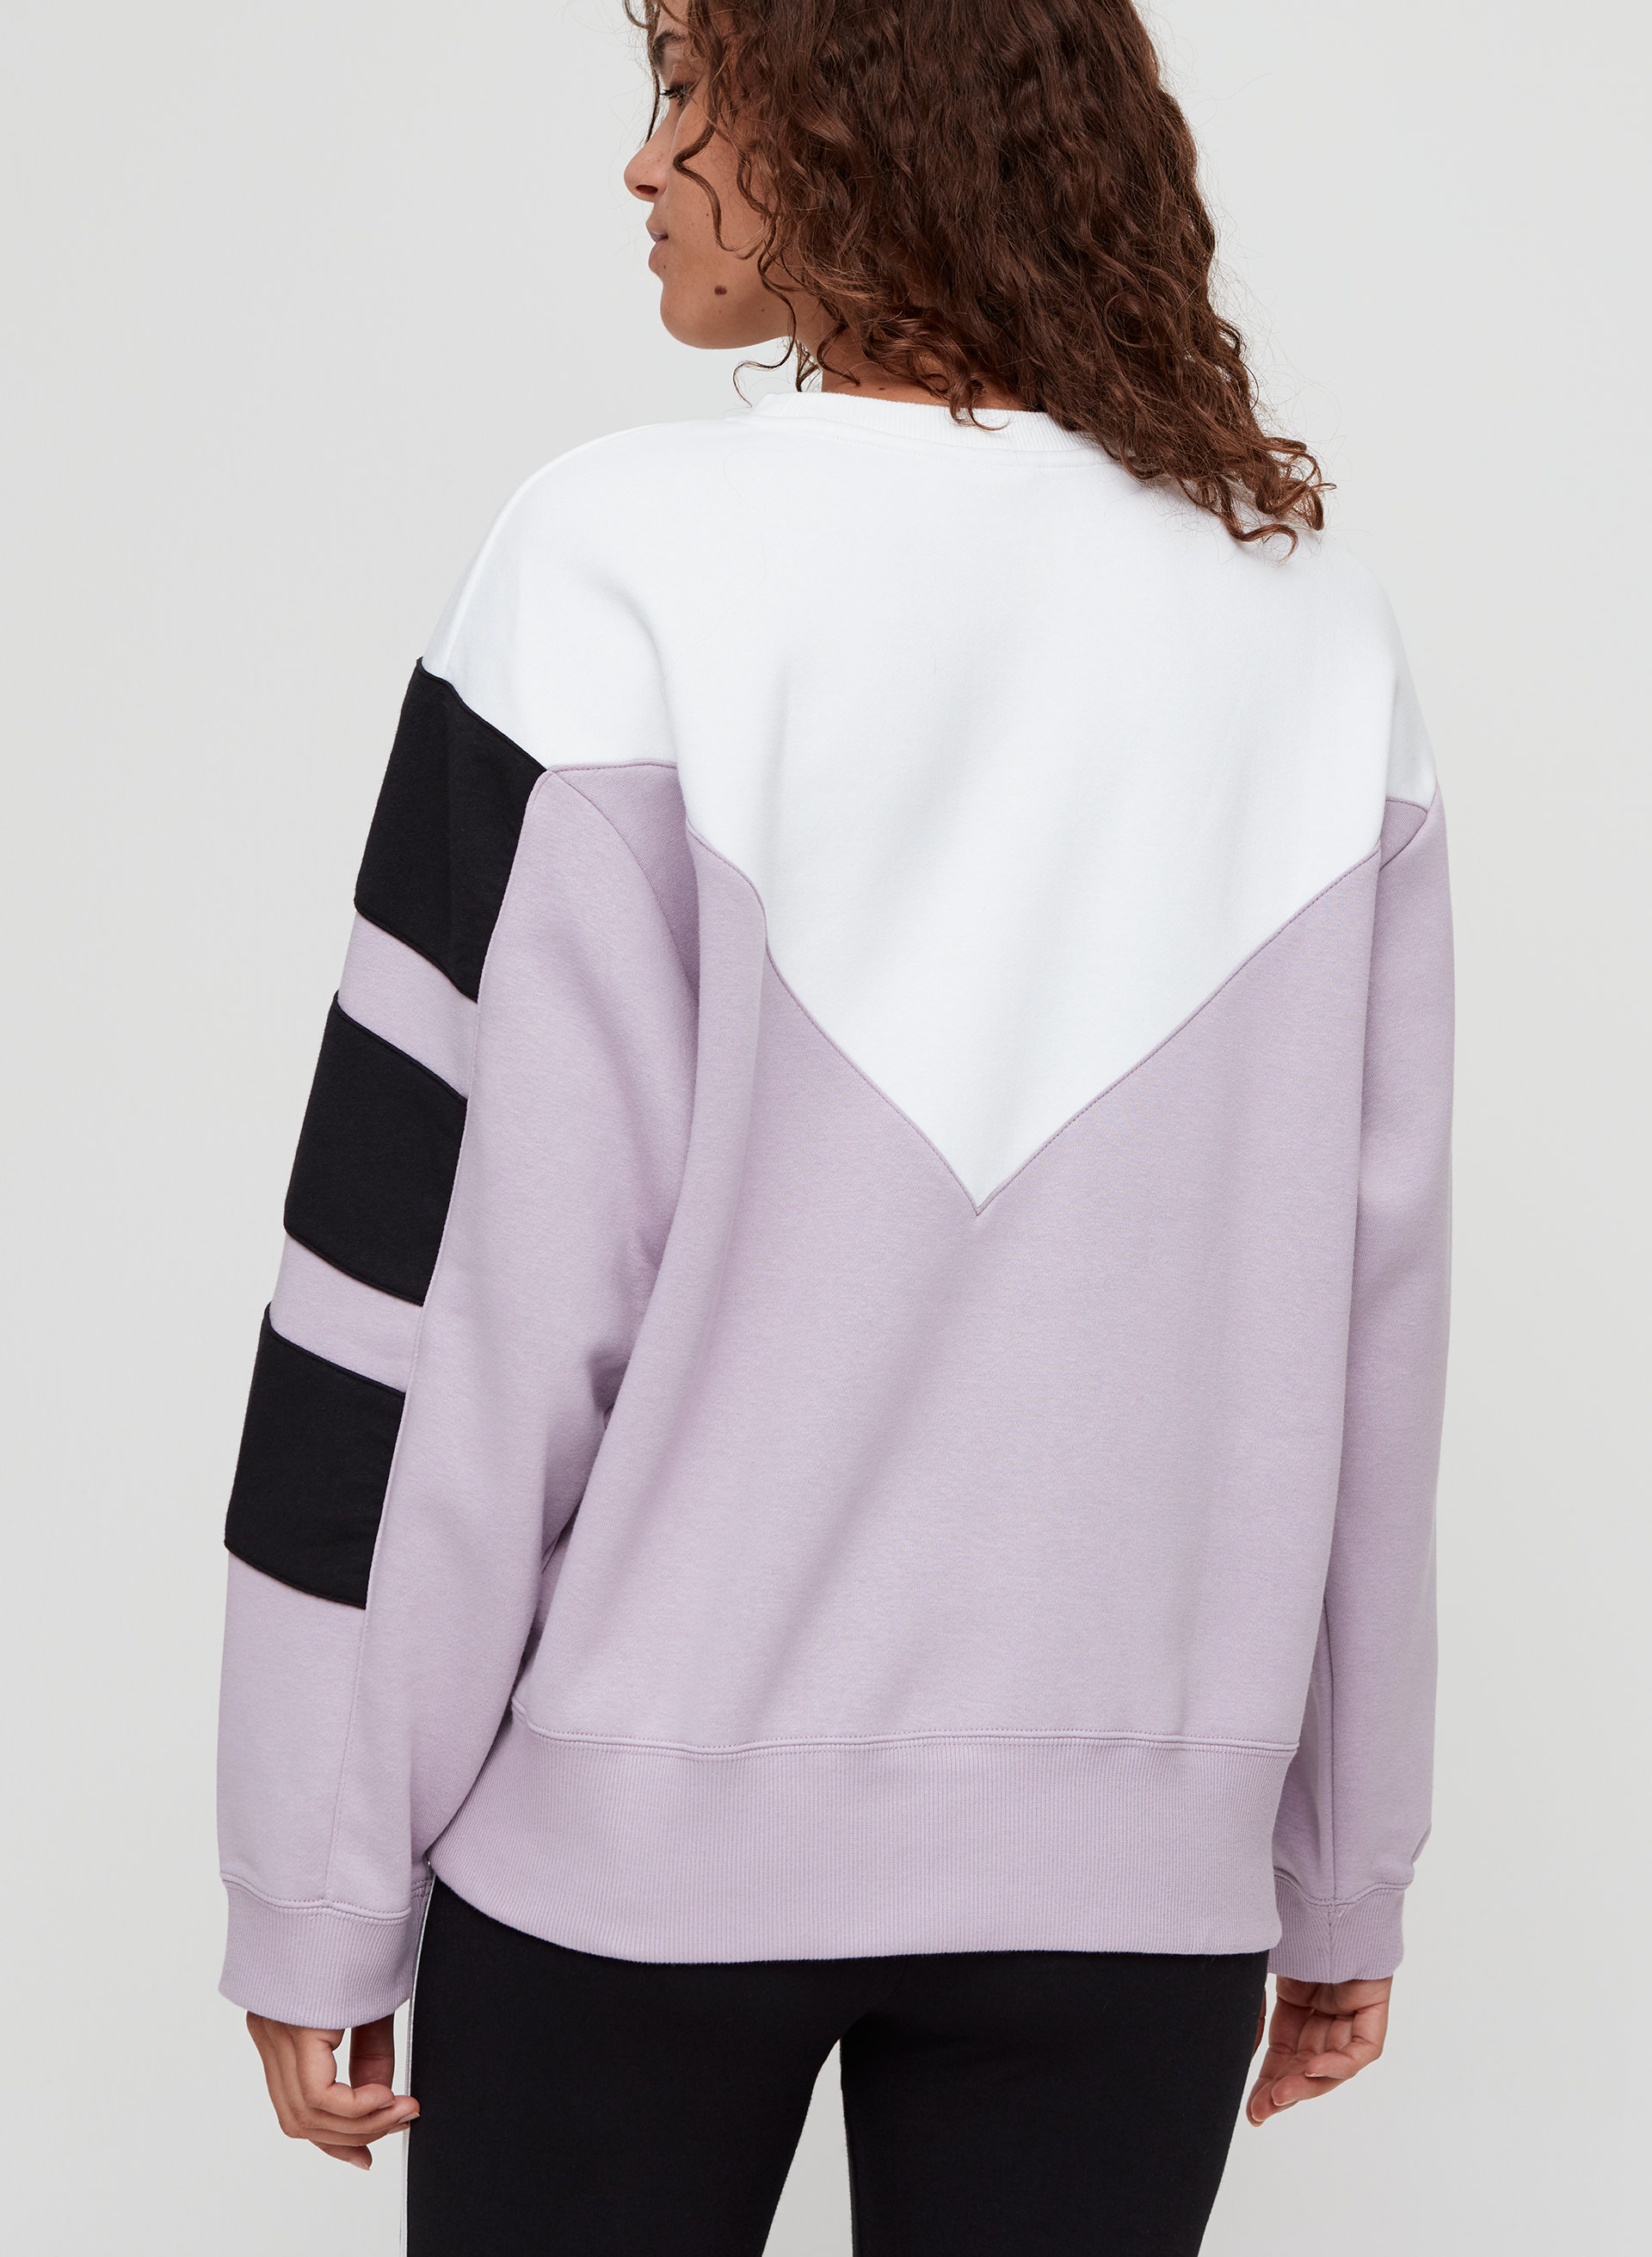 outlet store authentic order adidas ADIDAS SWEATER | Aritzia CA